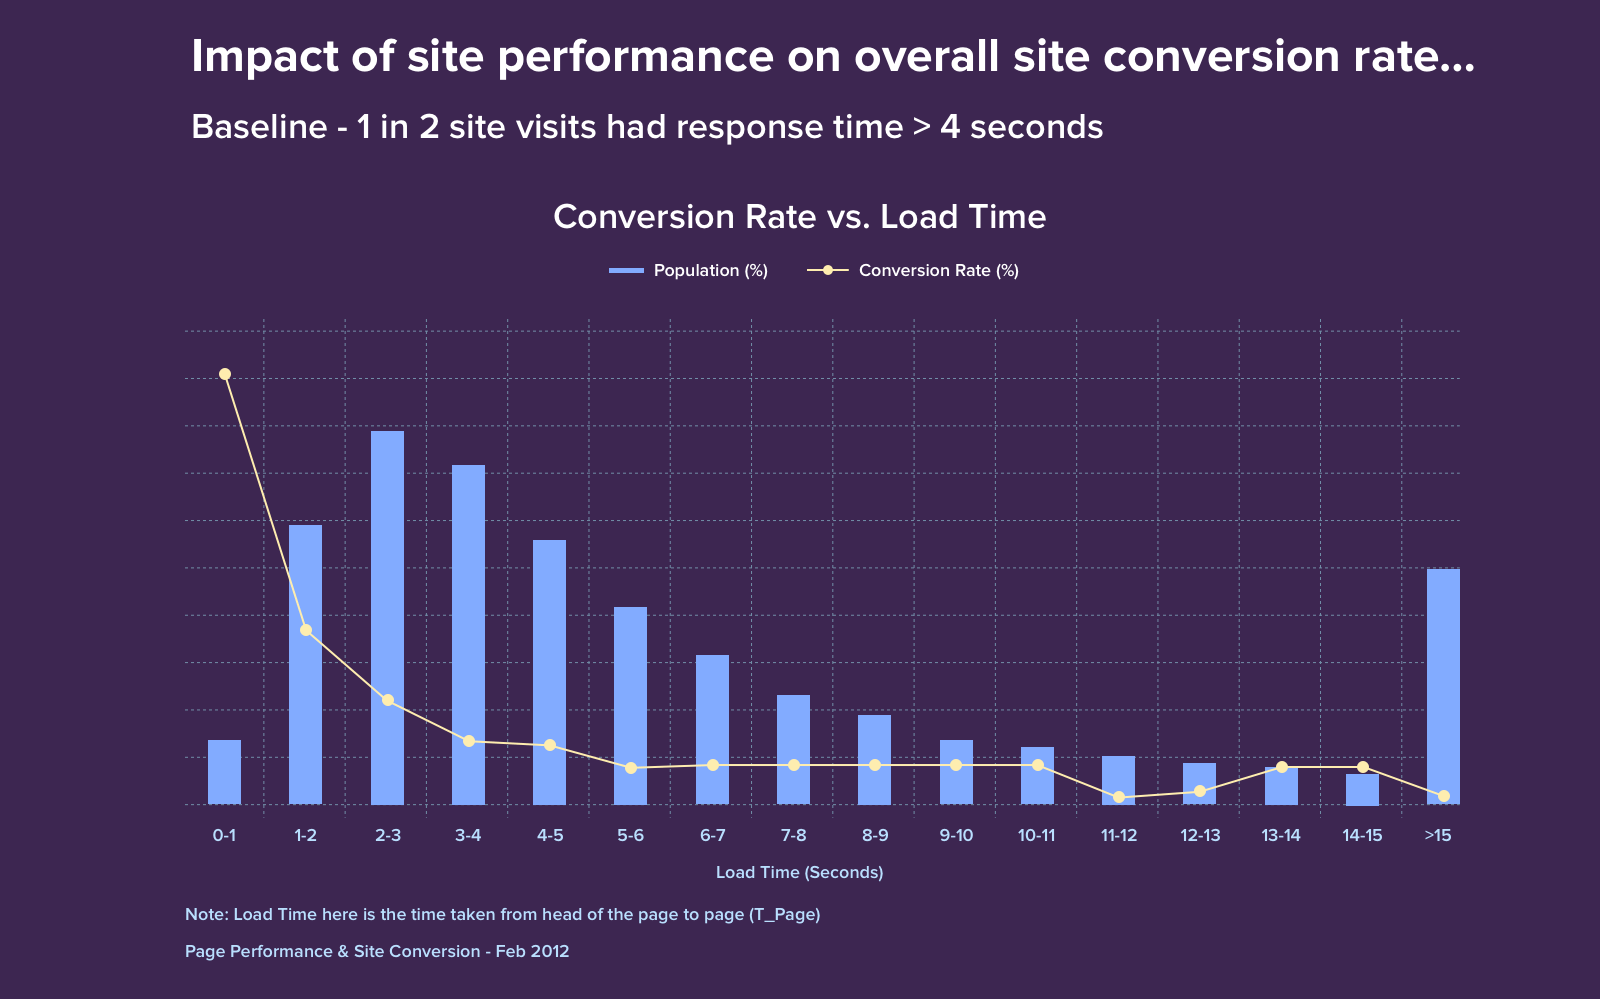 Page Performance & Site Conversions - Walmart 2012